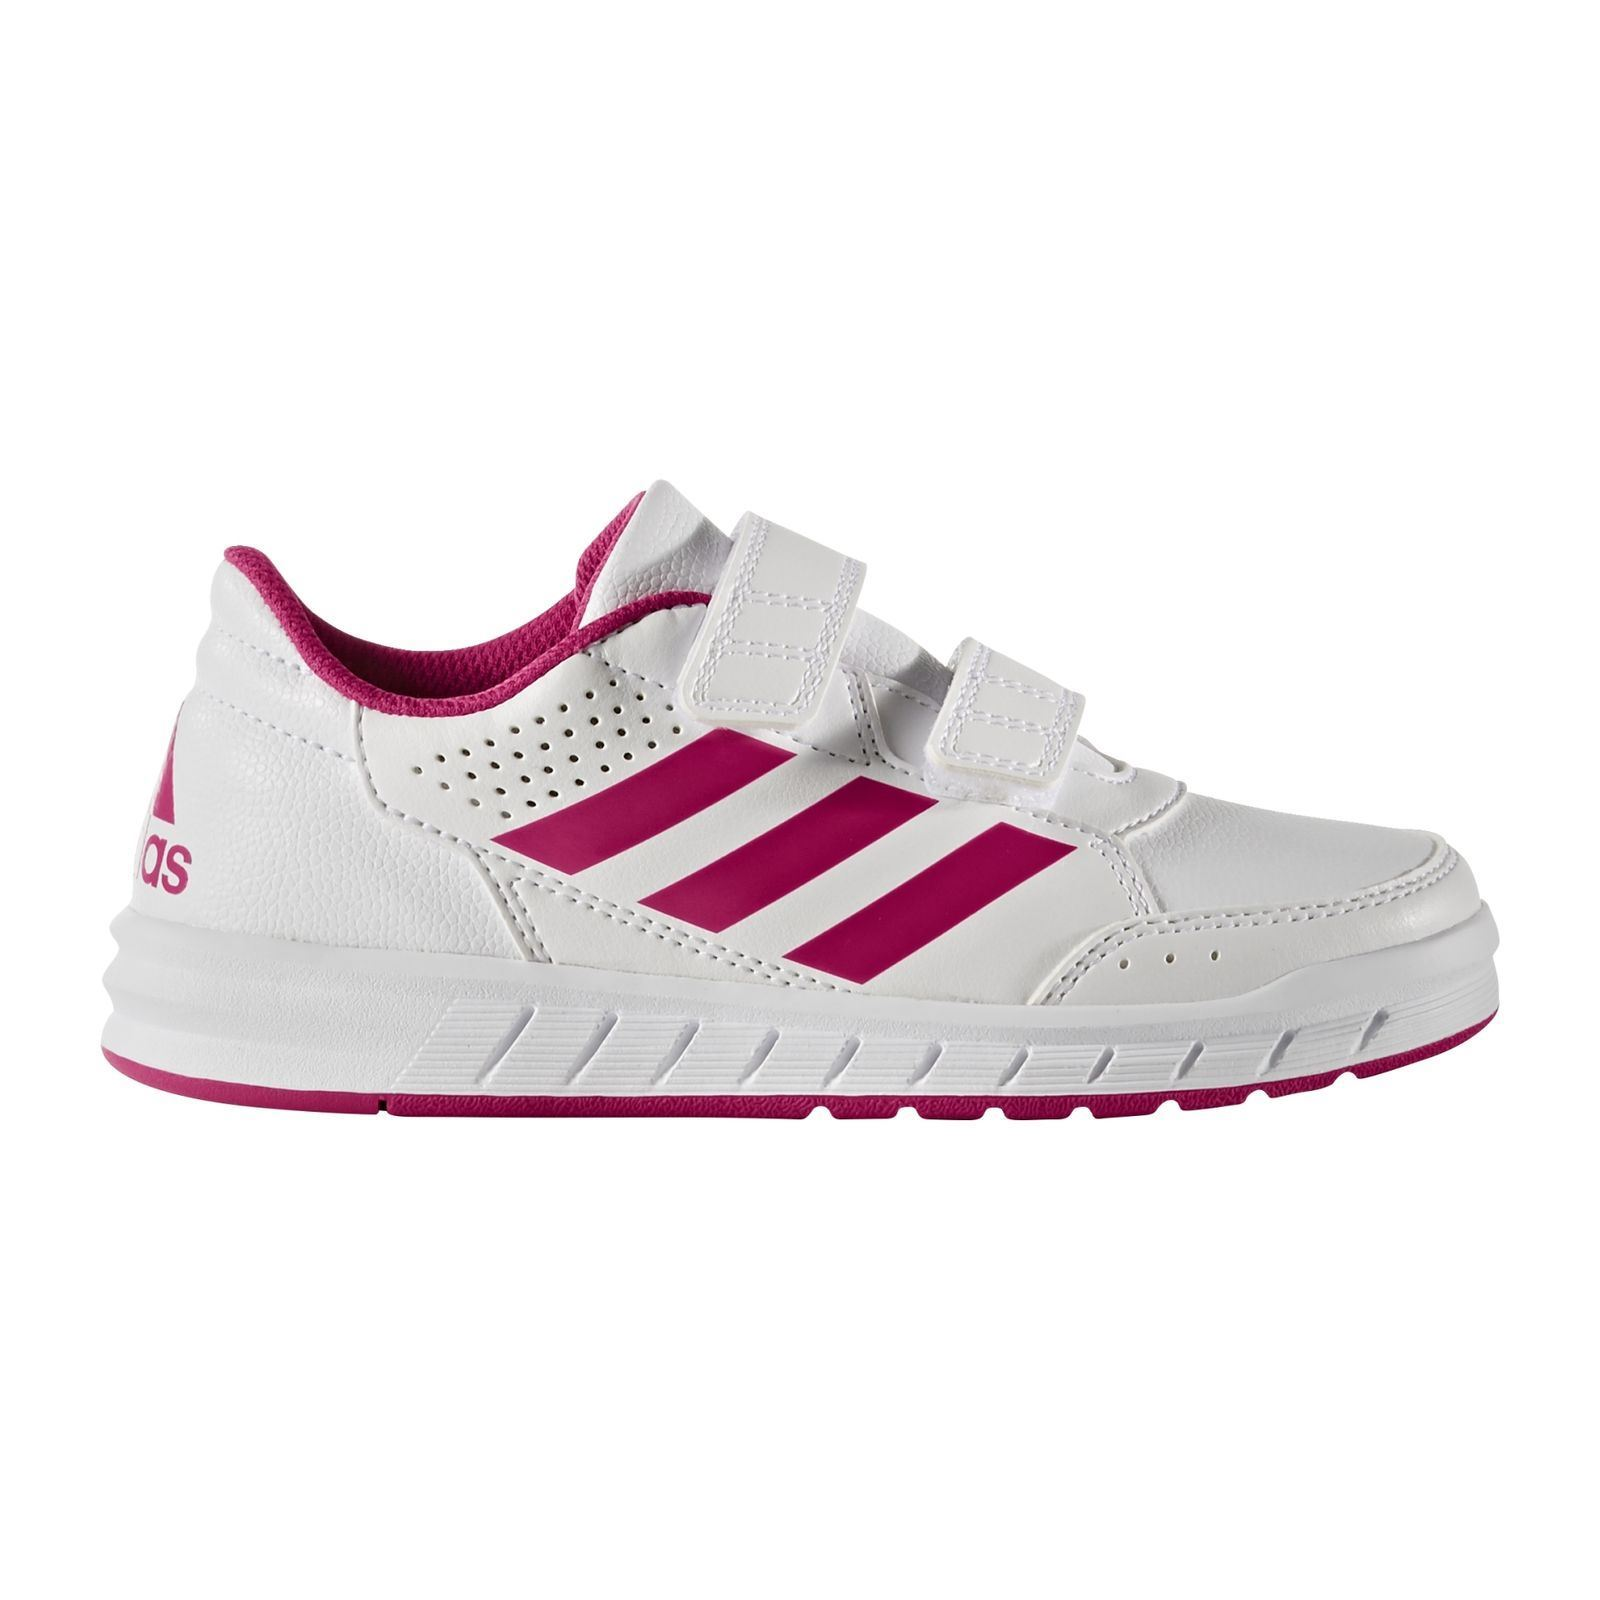 adidas performance altasport cf k scarpe da tennis sneakers rosa brandalley. Black Bedroom Furniture Sets. Home Design Ideas